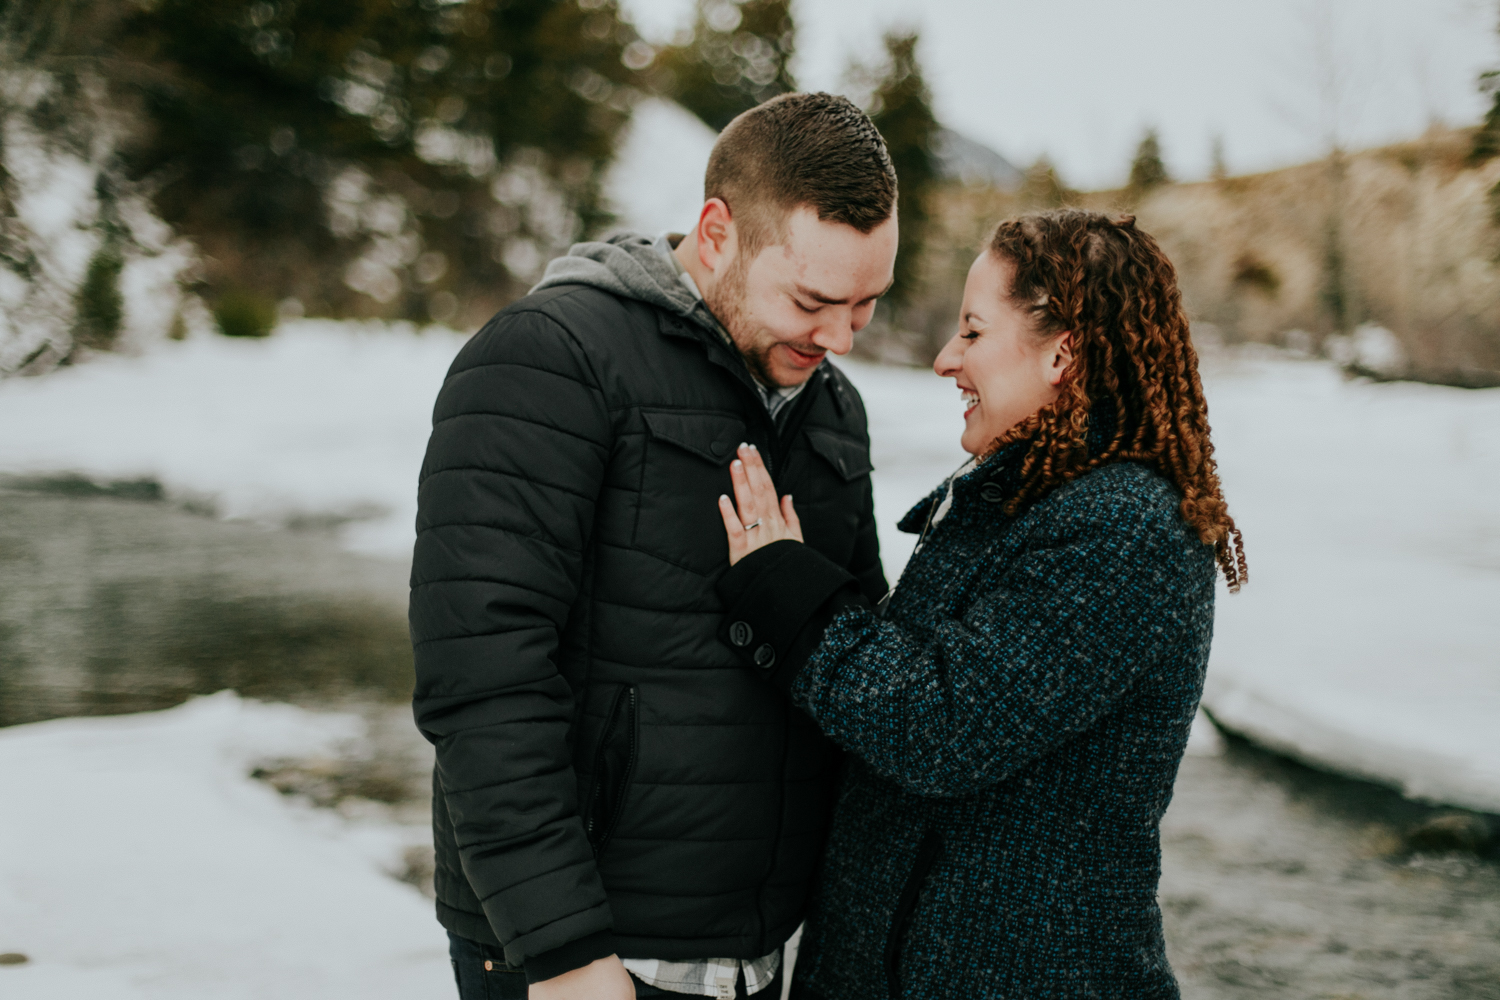 waterton-photographer-love-and-be-loved-photography-trent-danielle-engagement-winter-picture-image-photo-23.jpg